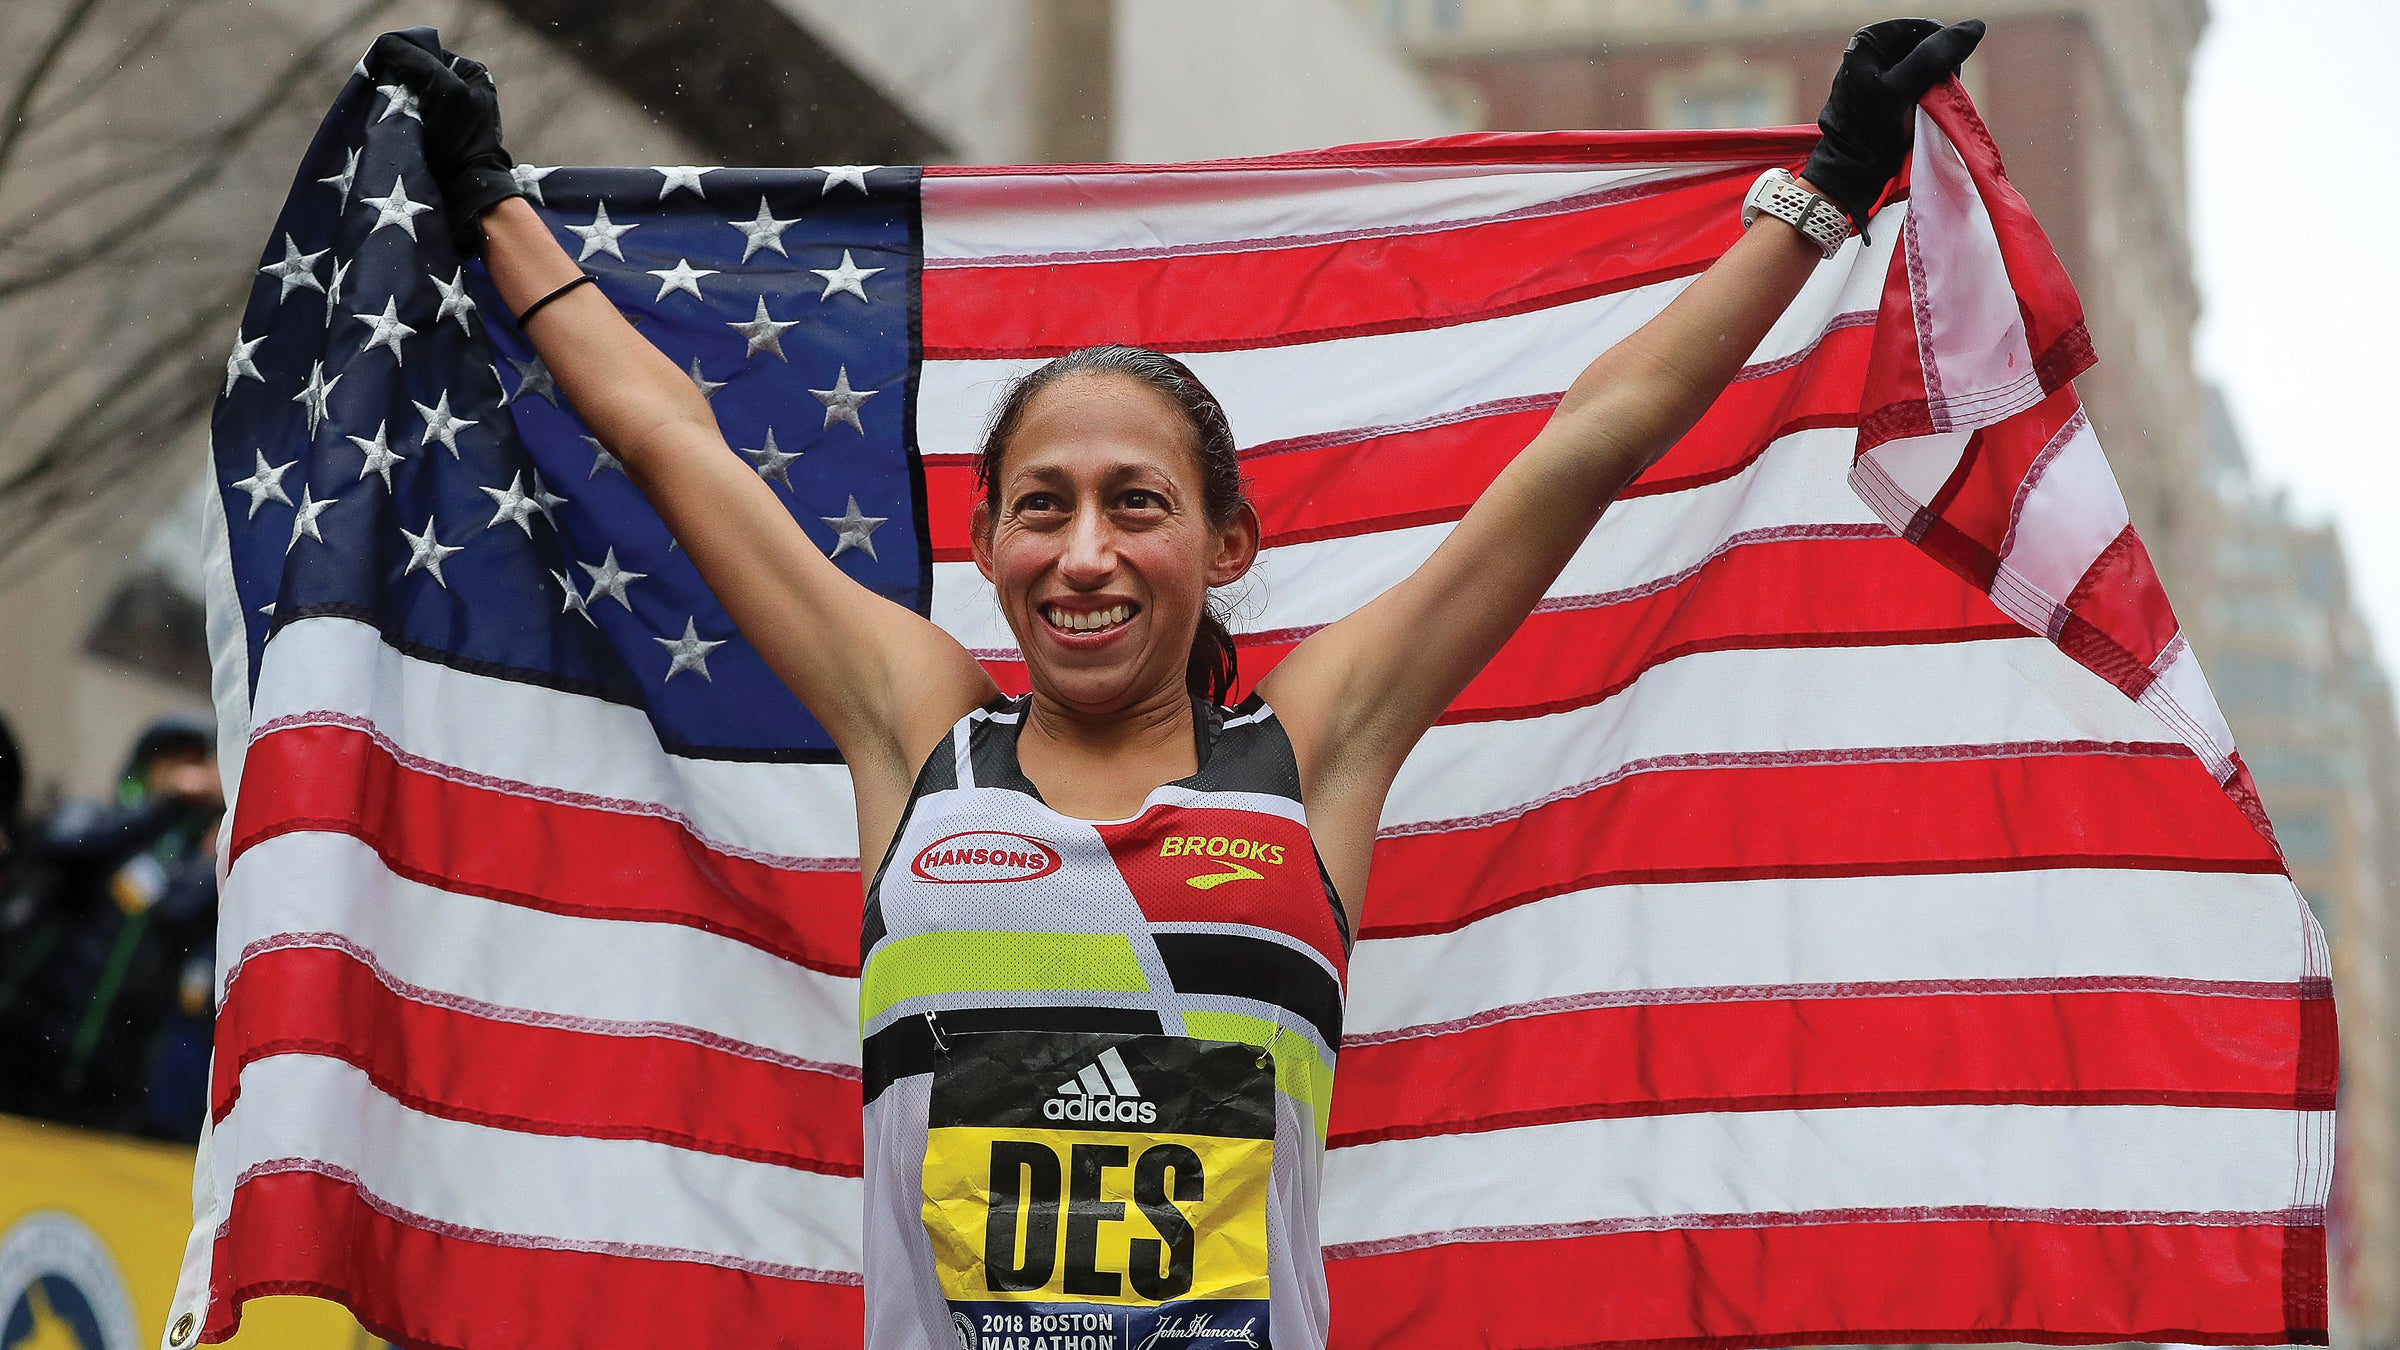 Des Linden wins Boston Marathon 2018